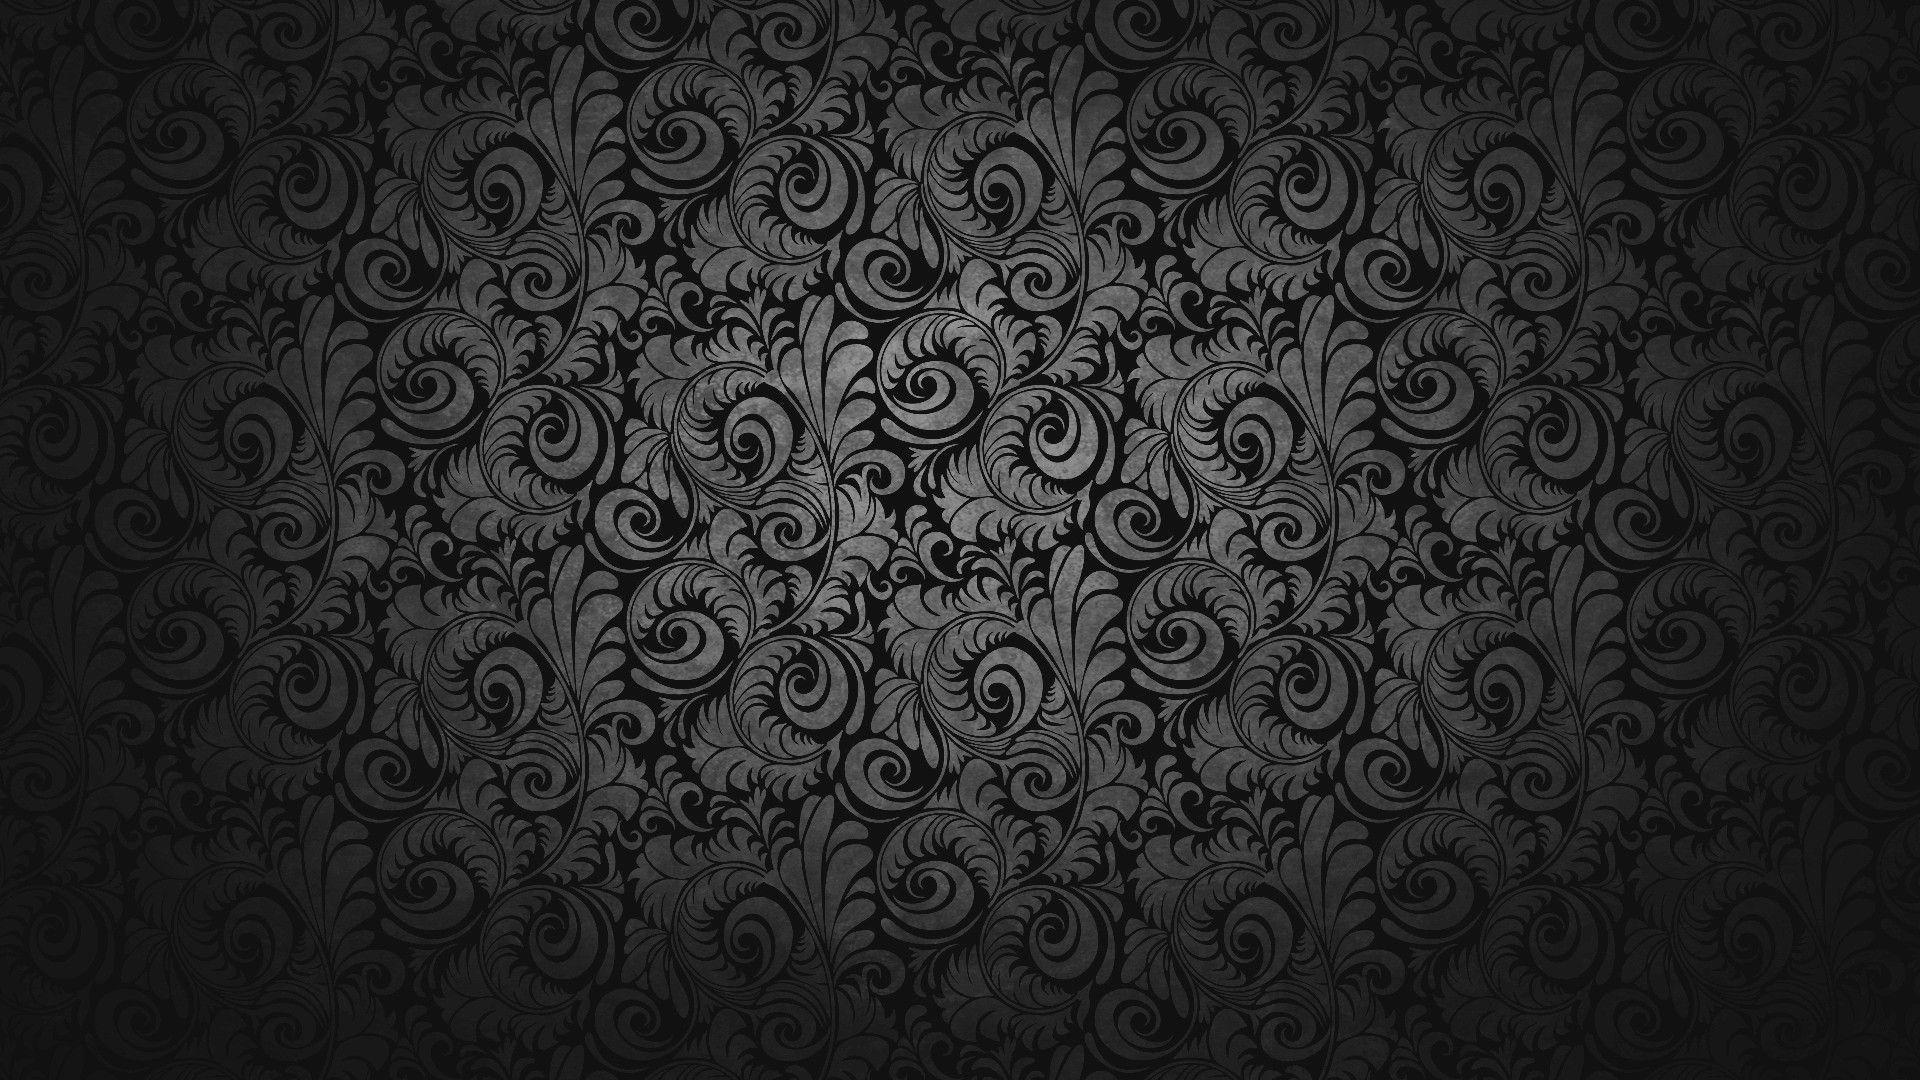 Black Abstract Hd Wallpaper 1080p